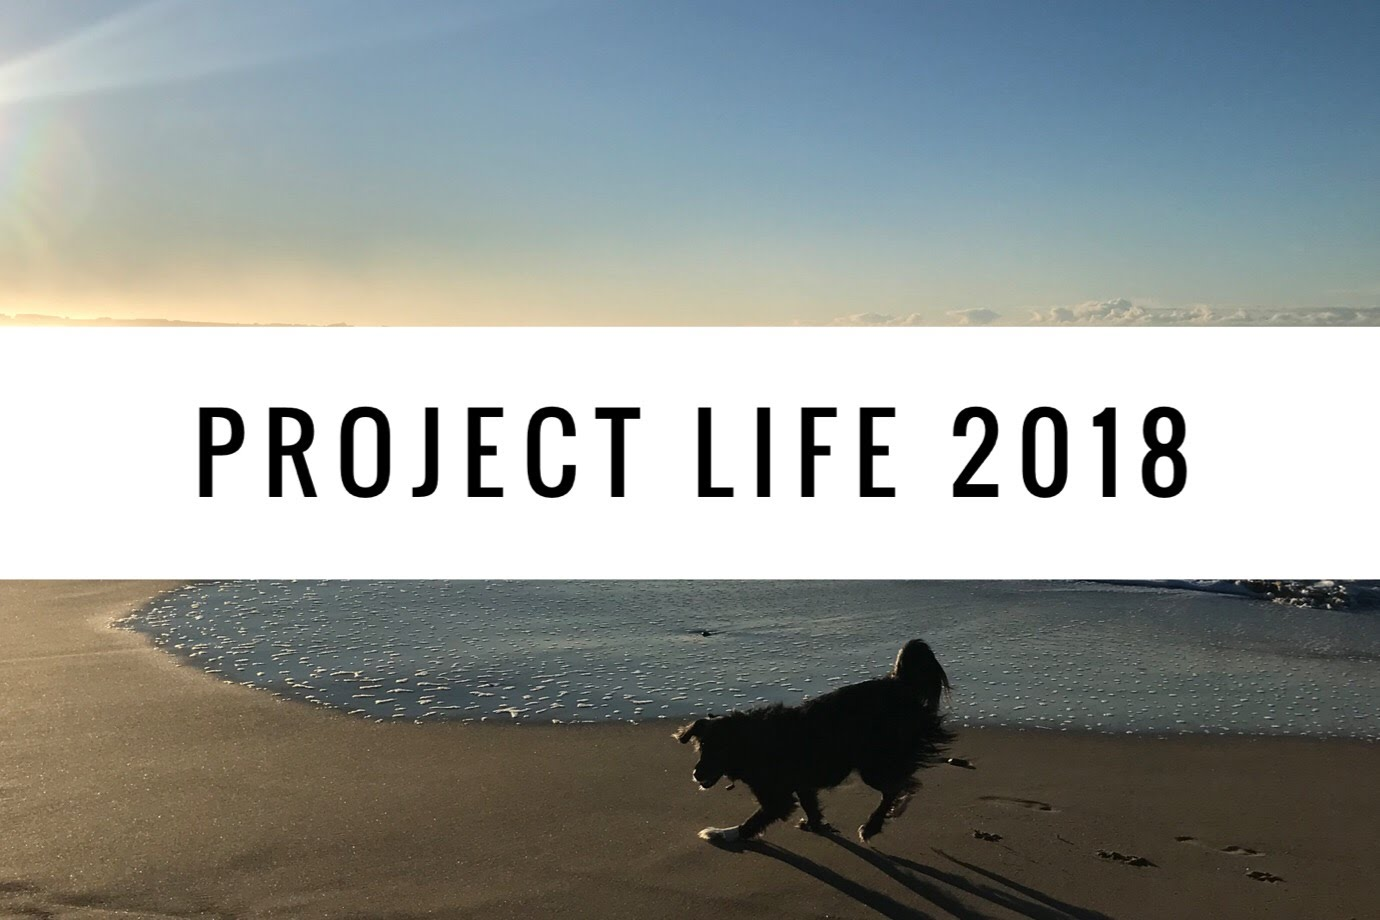 Project Life 2018